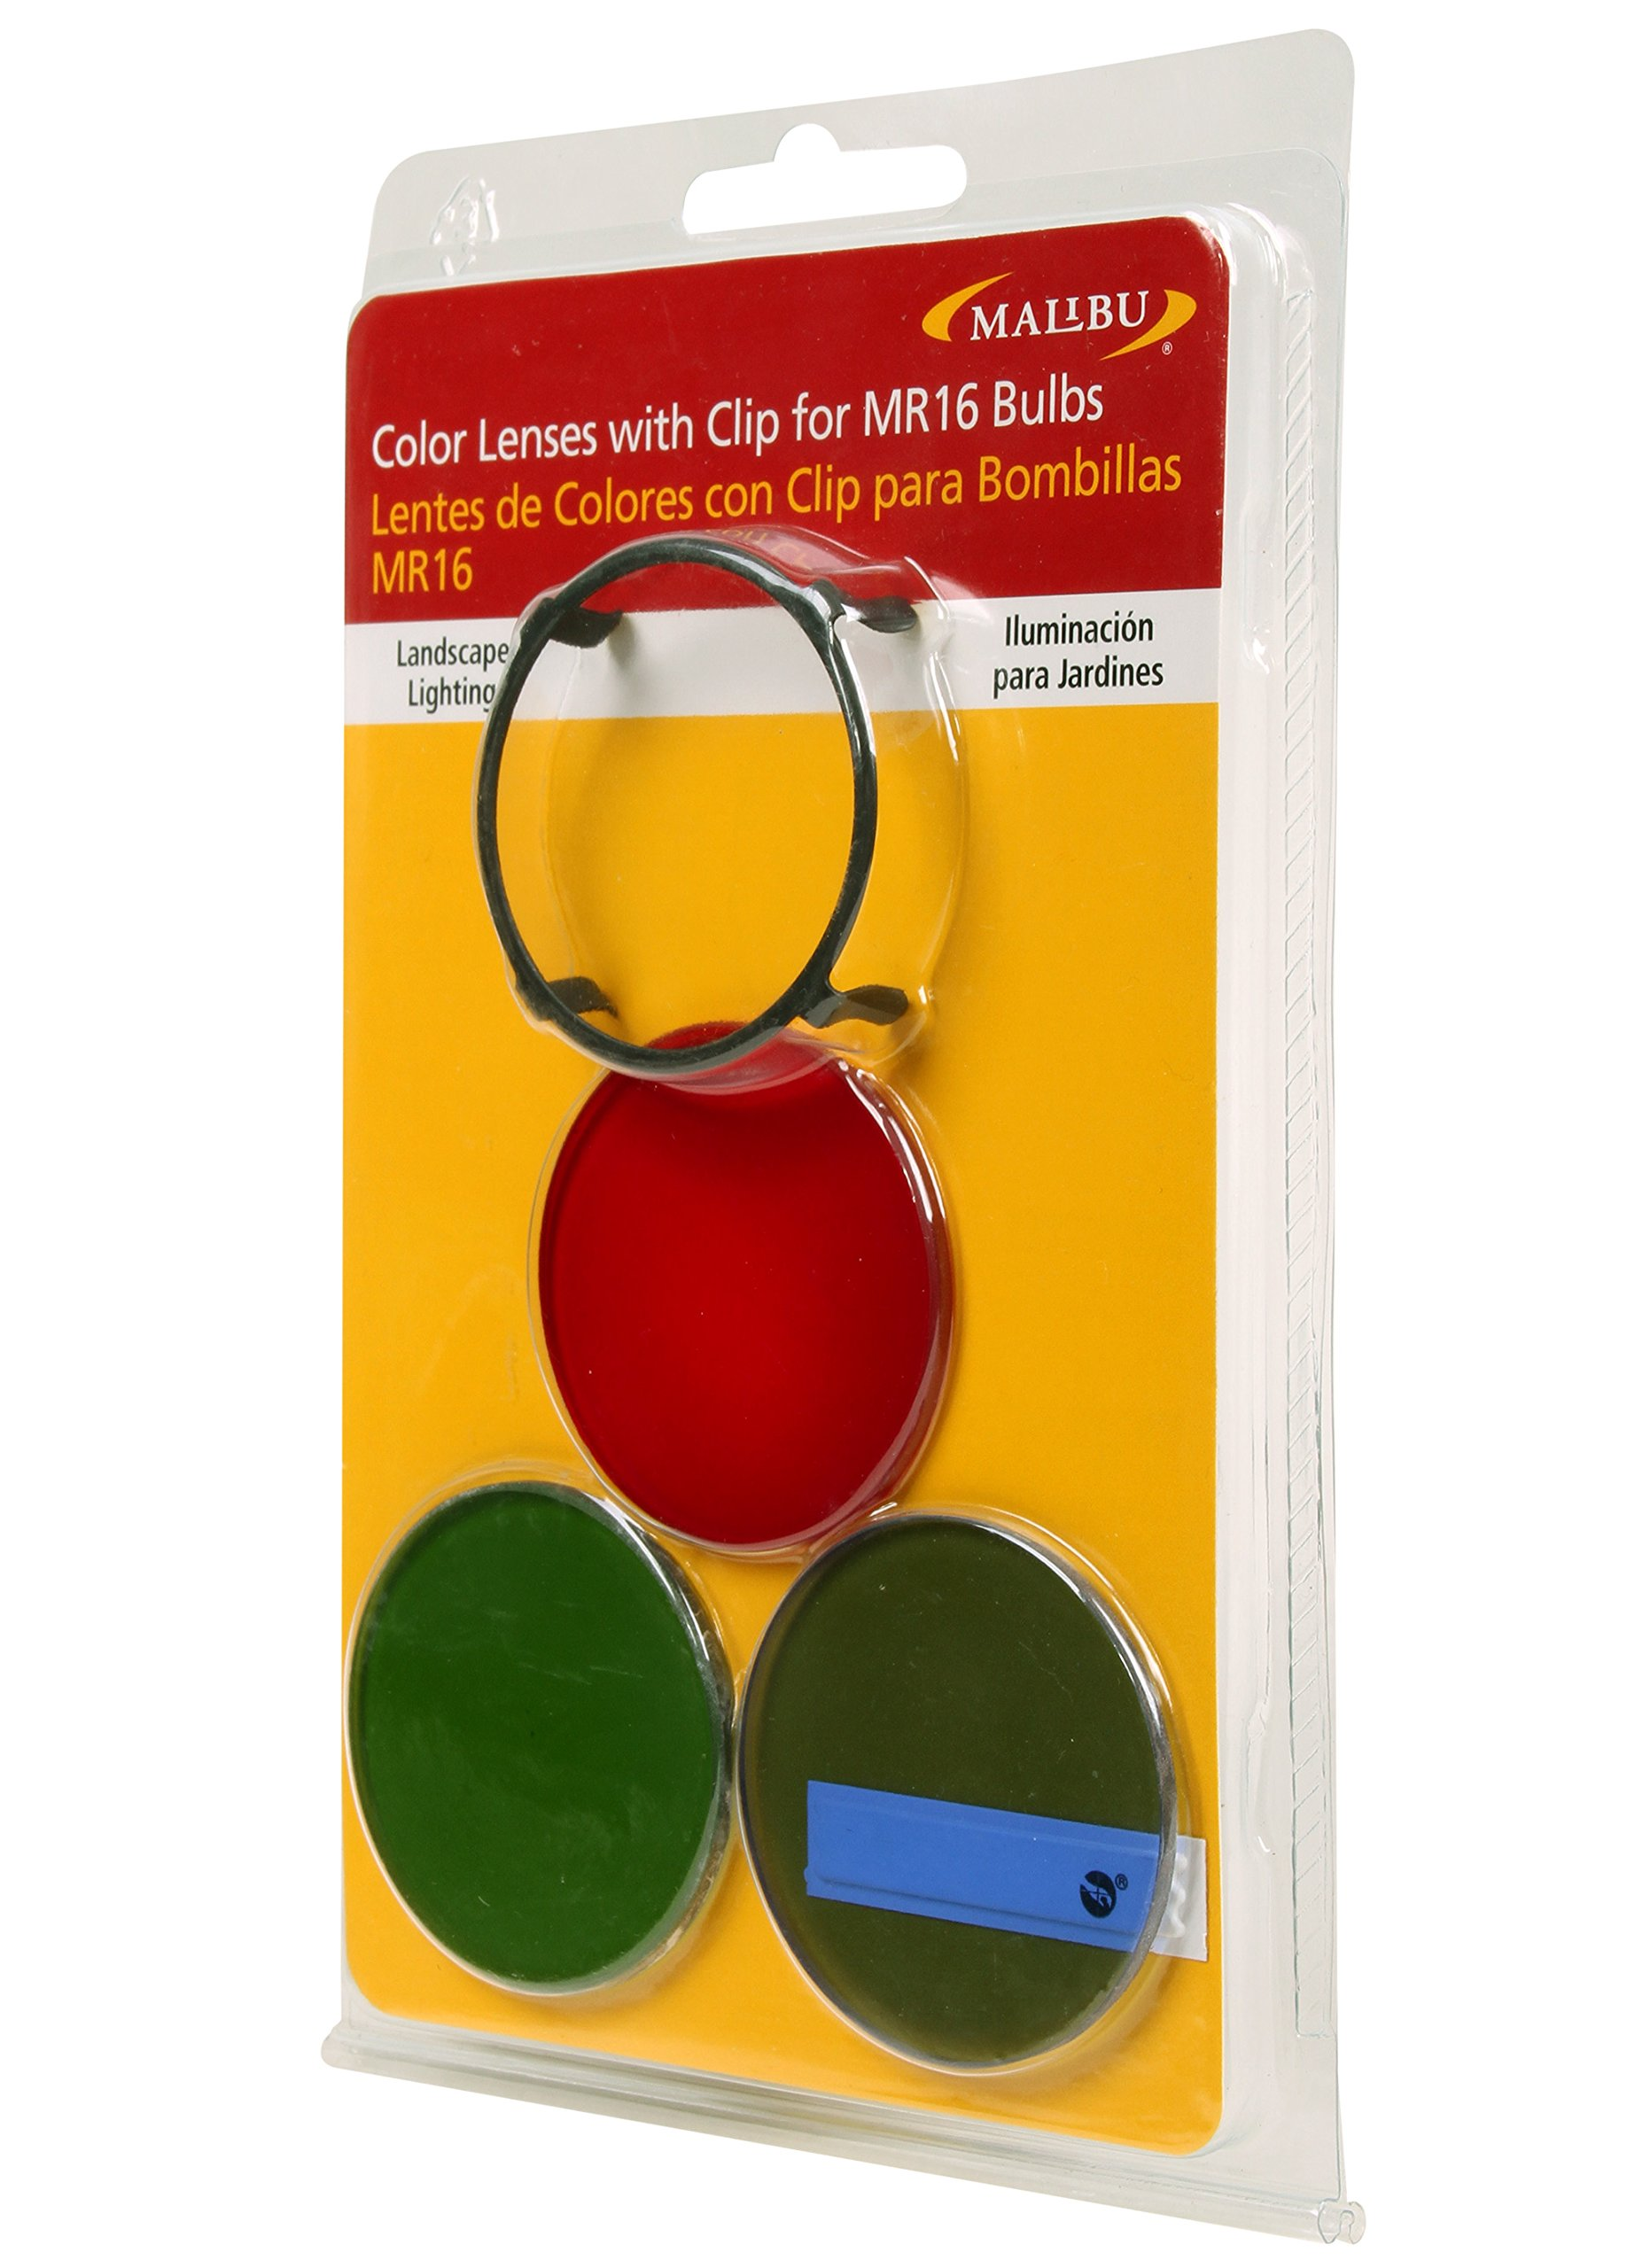 Malibu Color Lenses With Clip For Mr16 Buls For Redbluegreen 8100-3520-01 12